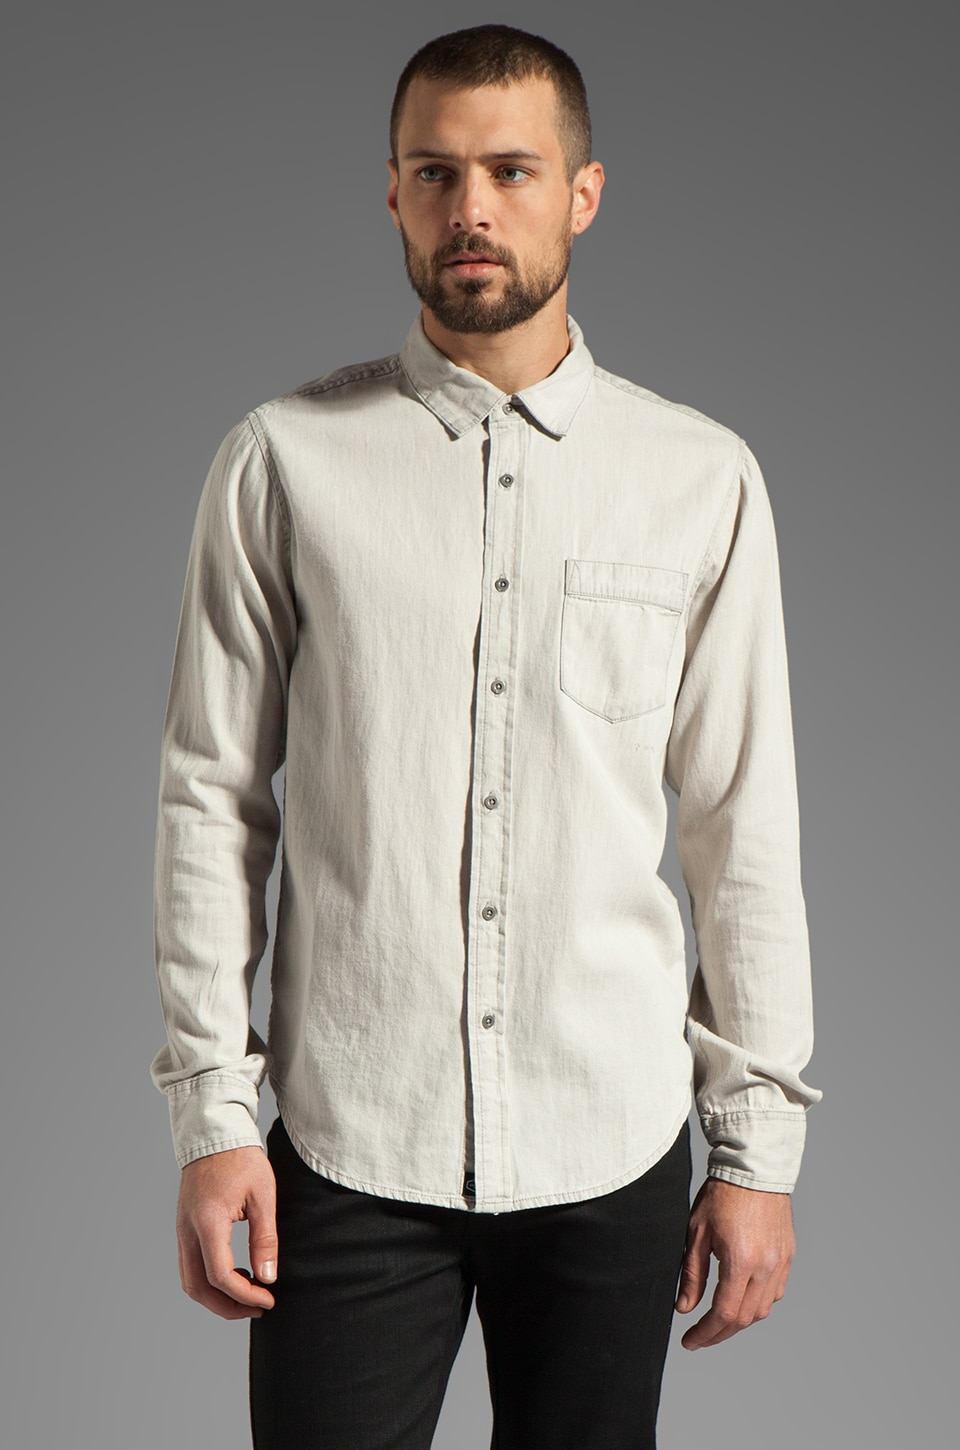 RVCA Bleach L/S Shirt in Natural